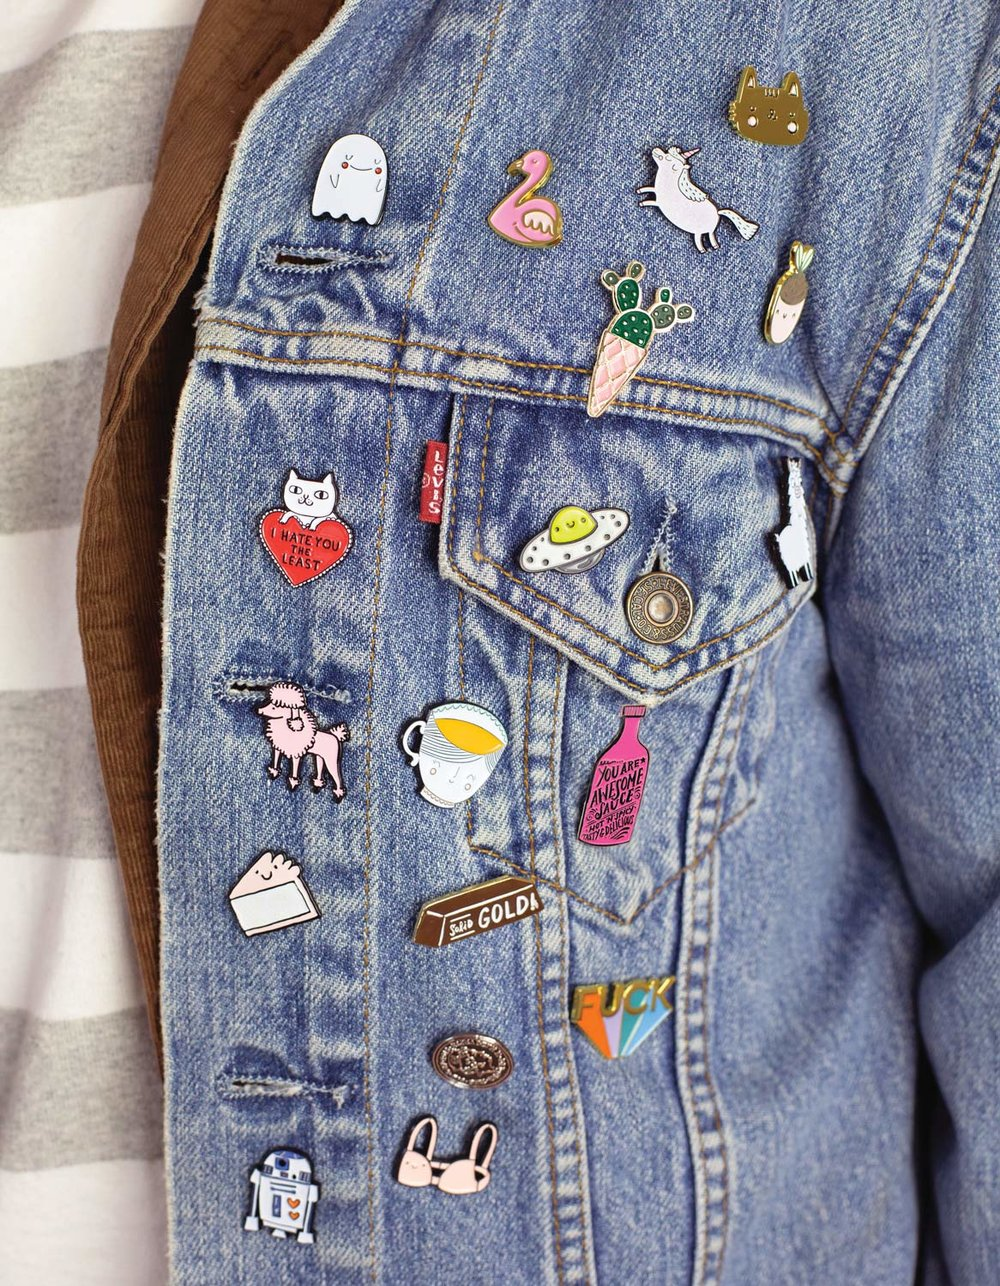 THE PIN - Mum got a jacket that needs snazzing up? Or maybe a bag that isn't all that jazzy? Why not have a browse of some pins that will spice up her life. And her coat.